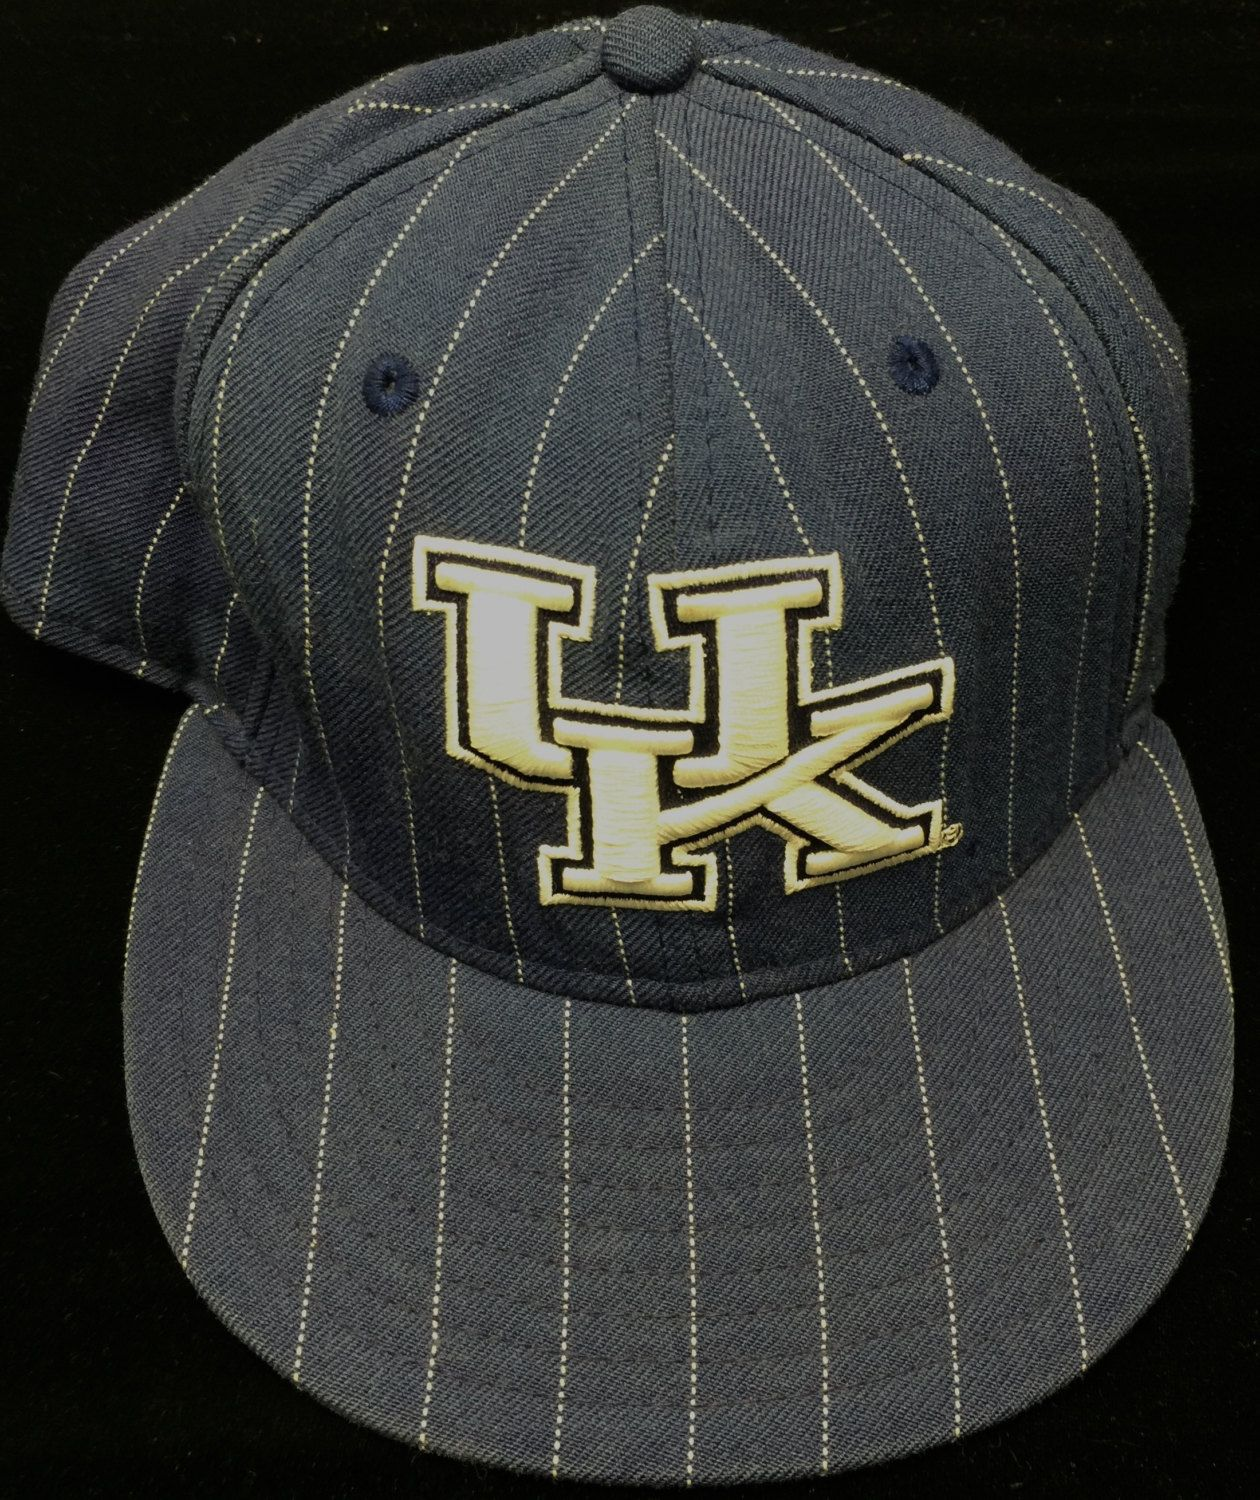 University Of Kentucky Uk New Era Fitted Cap Size 7 1 2 By Corycranksouthats On Etsy With Images New Era Fitted Fitted Caps New Era